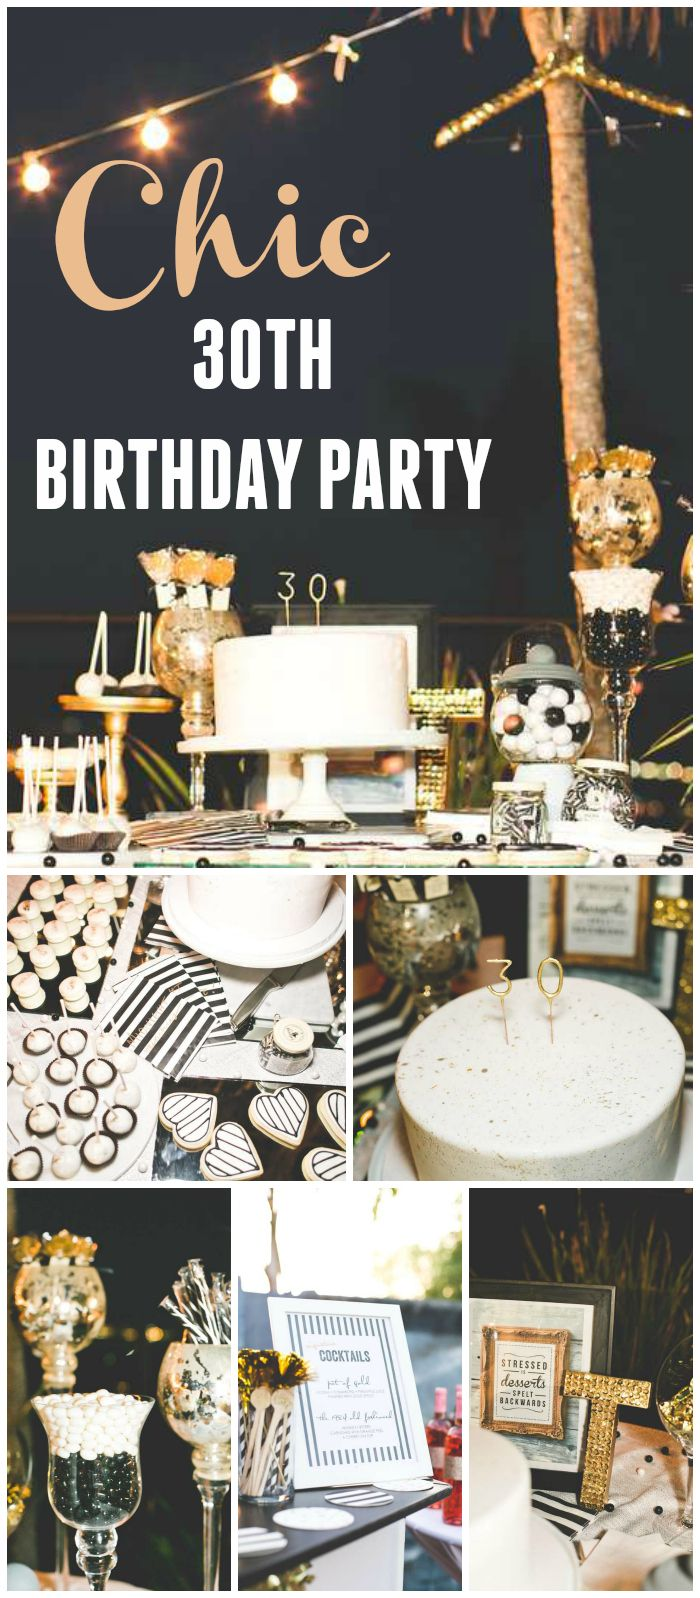 The 25 Best Party Planning Ideas On Pinterest Catering For